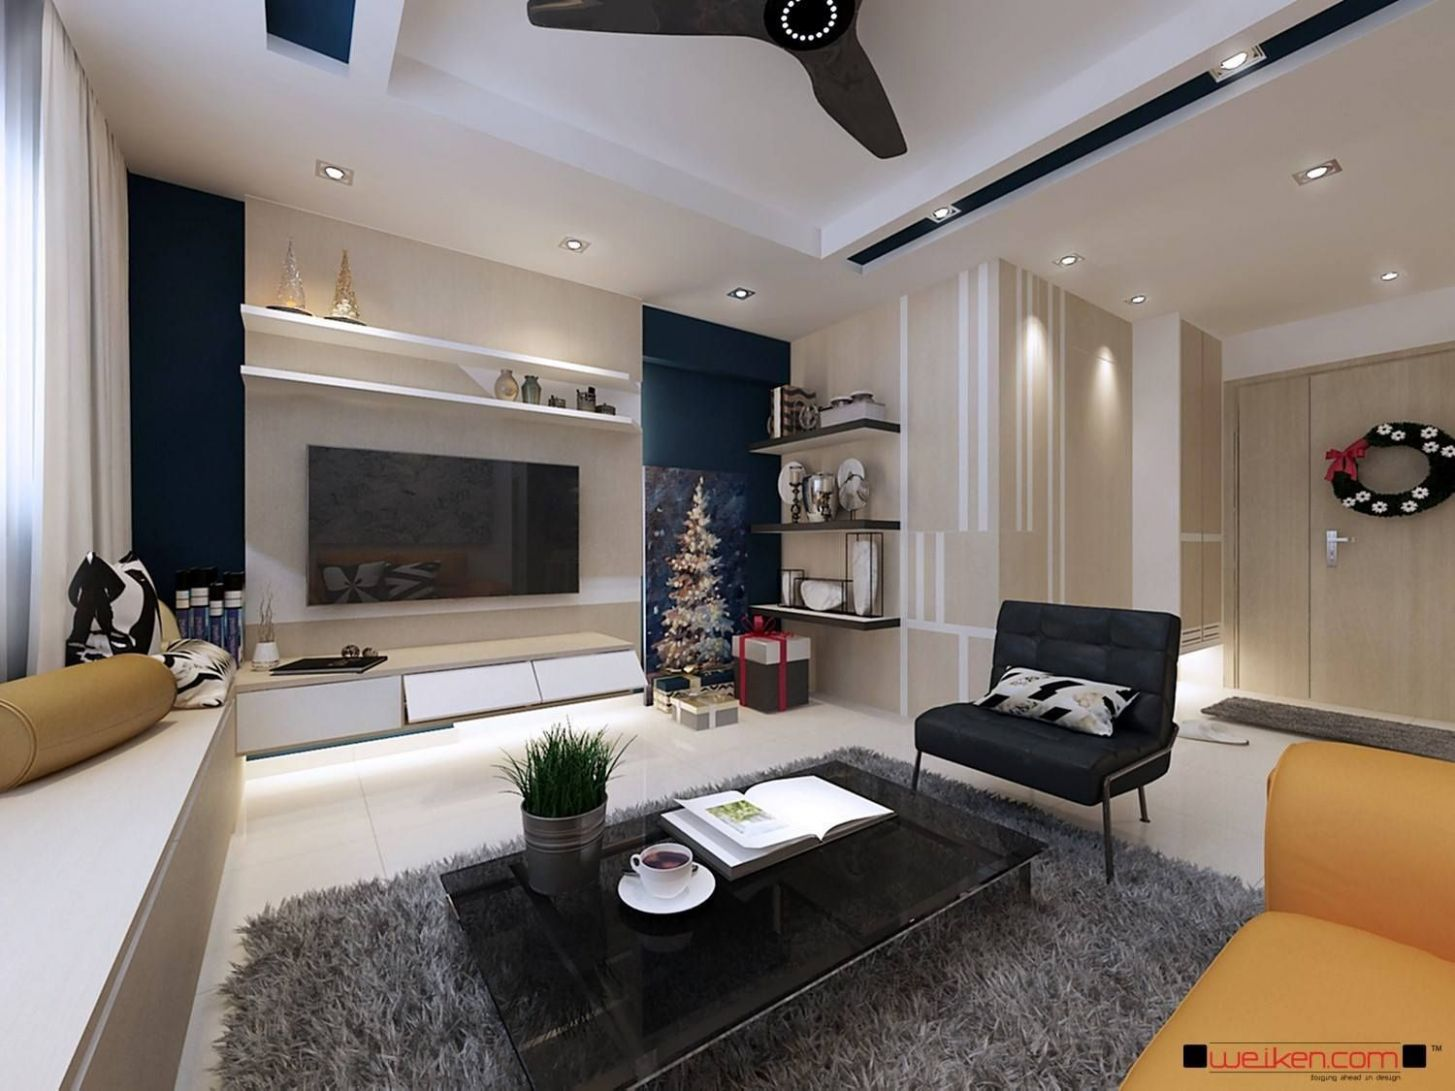 stylish living room ideas modern mix (With images) | Living room ..